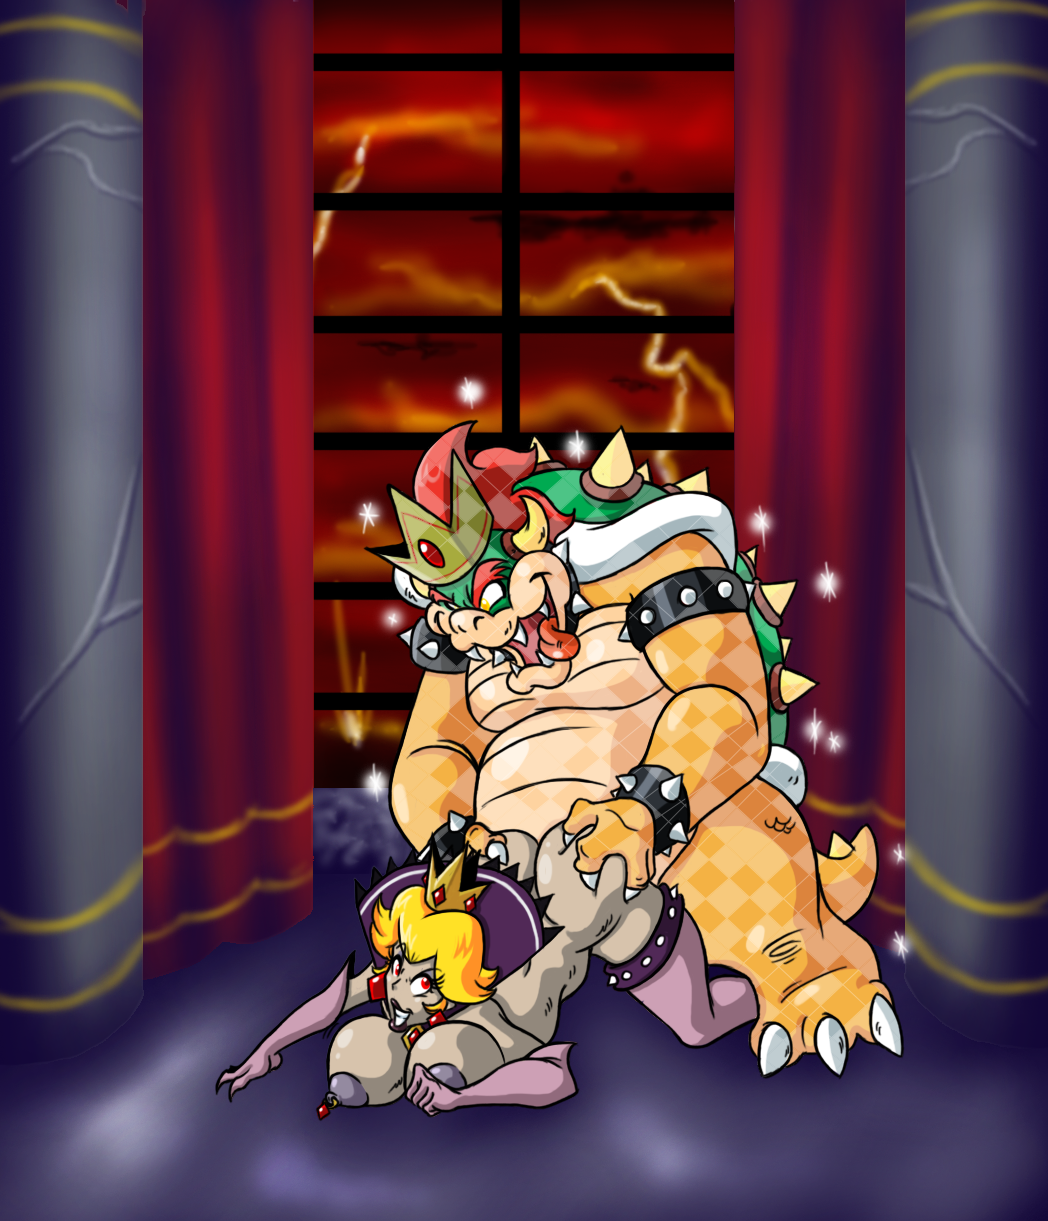 bowser bed in and peach My hero academia deku and toga